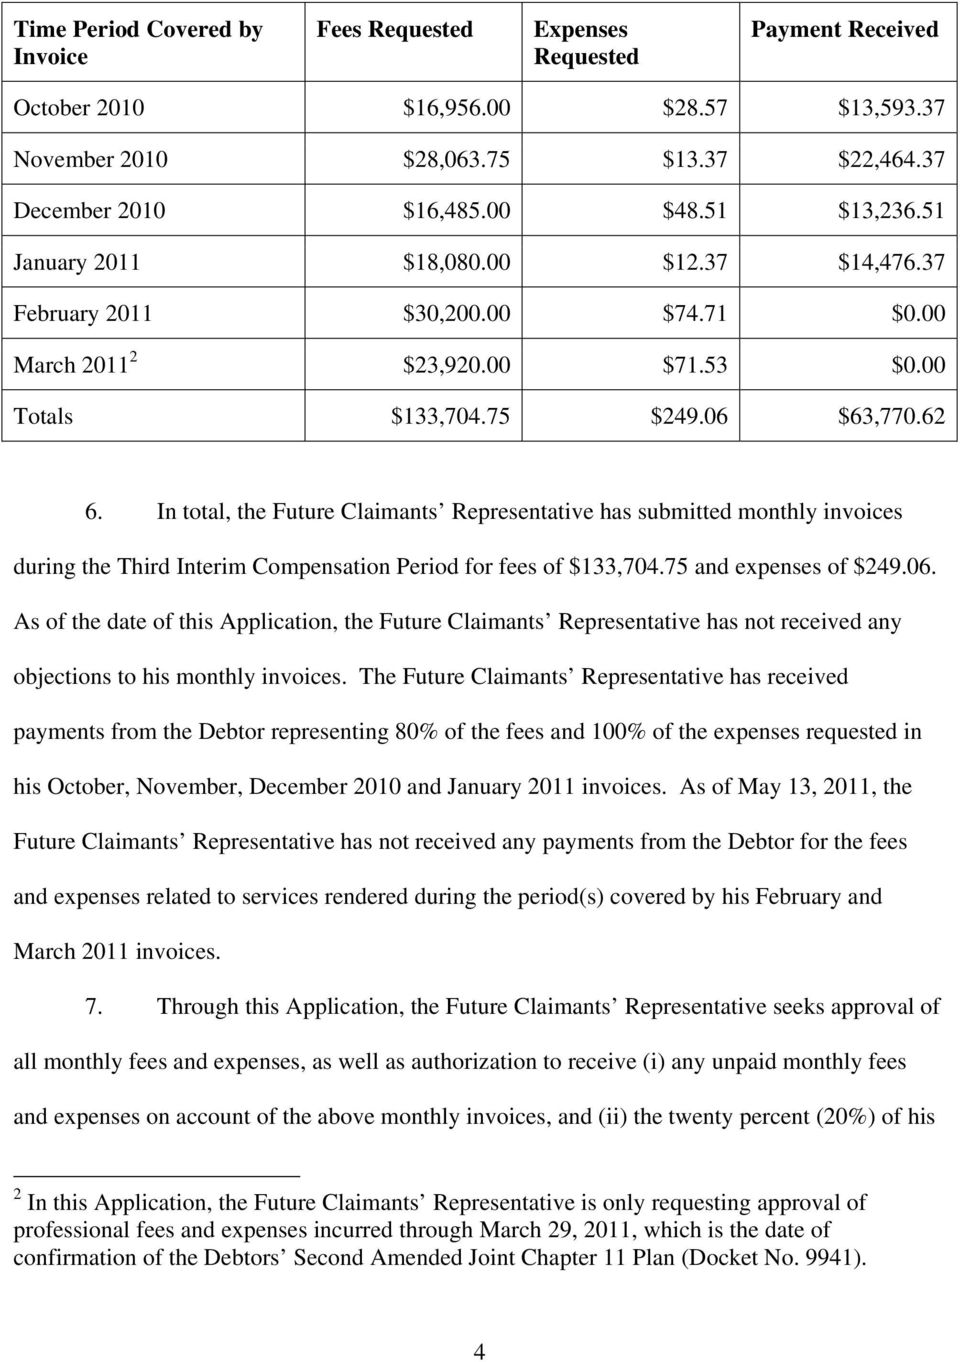 In total, the Future Claimants Representative has submitted monthly invoices during the Third Interim Compensation Period for fees of $133,704.75 and expenses of $249.06.